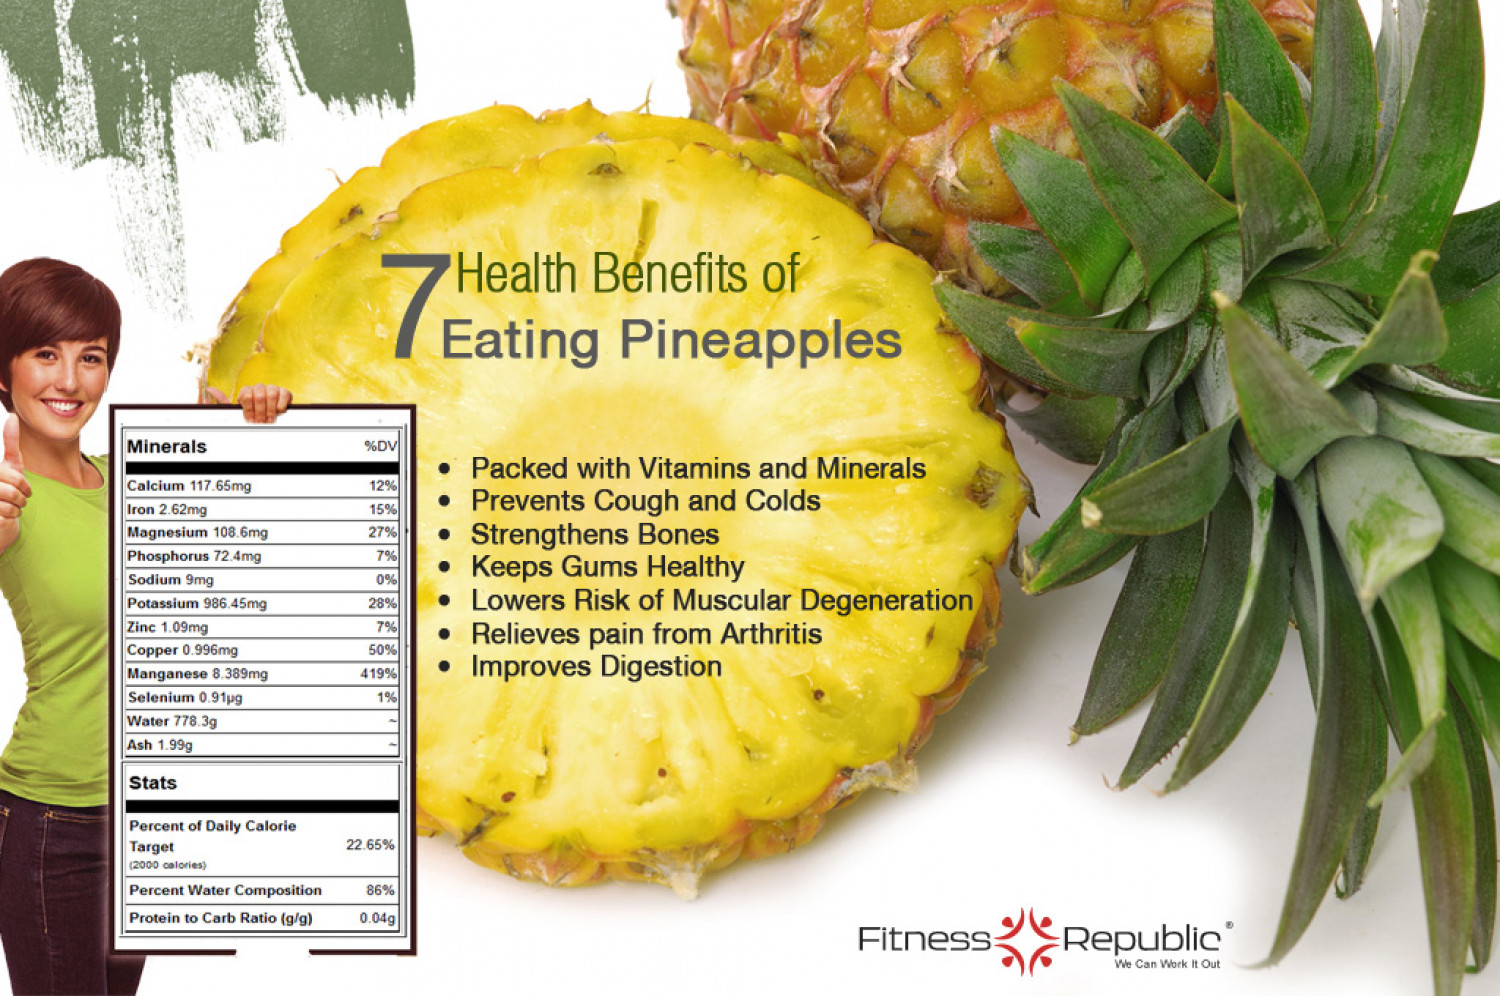 7 Health Benefits Of Eating Pineapples Infographic